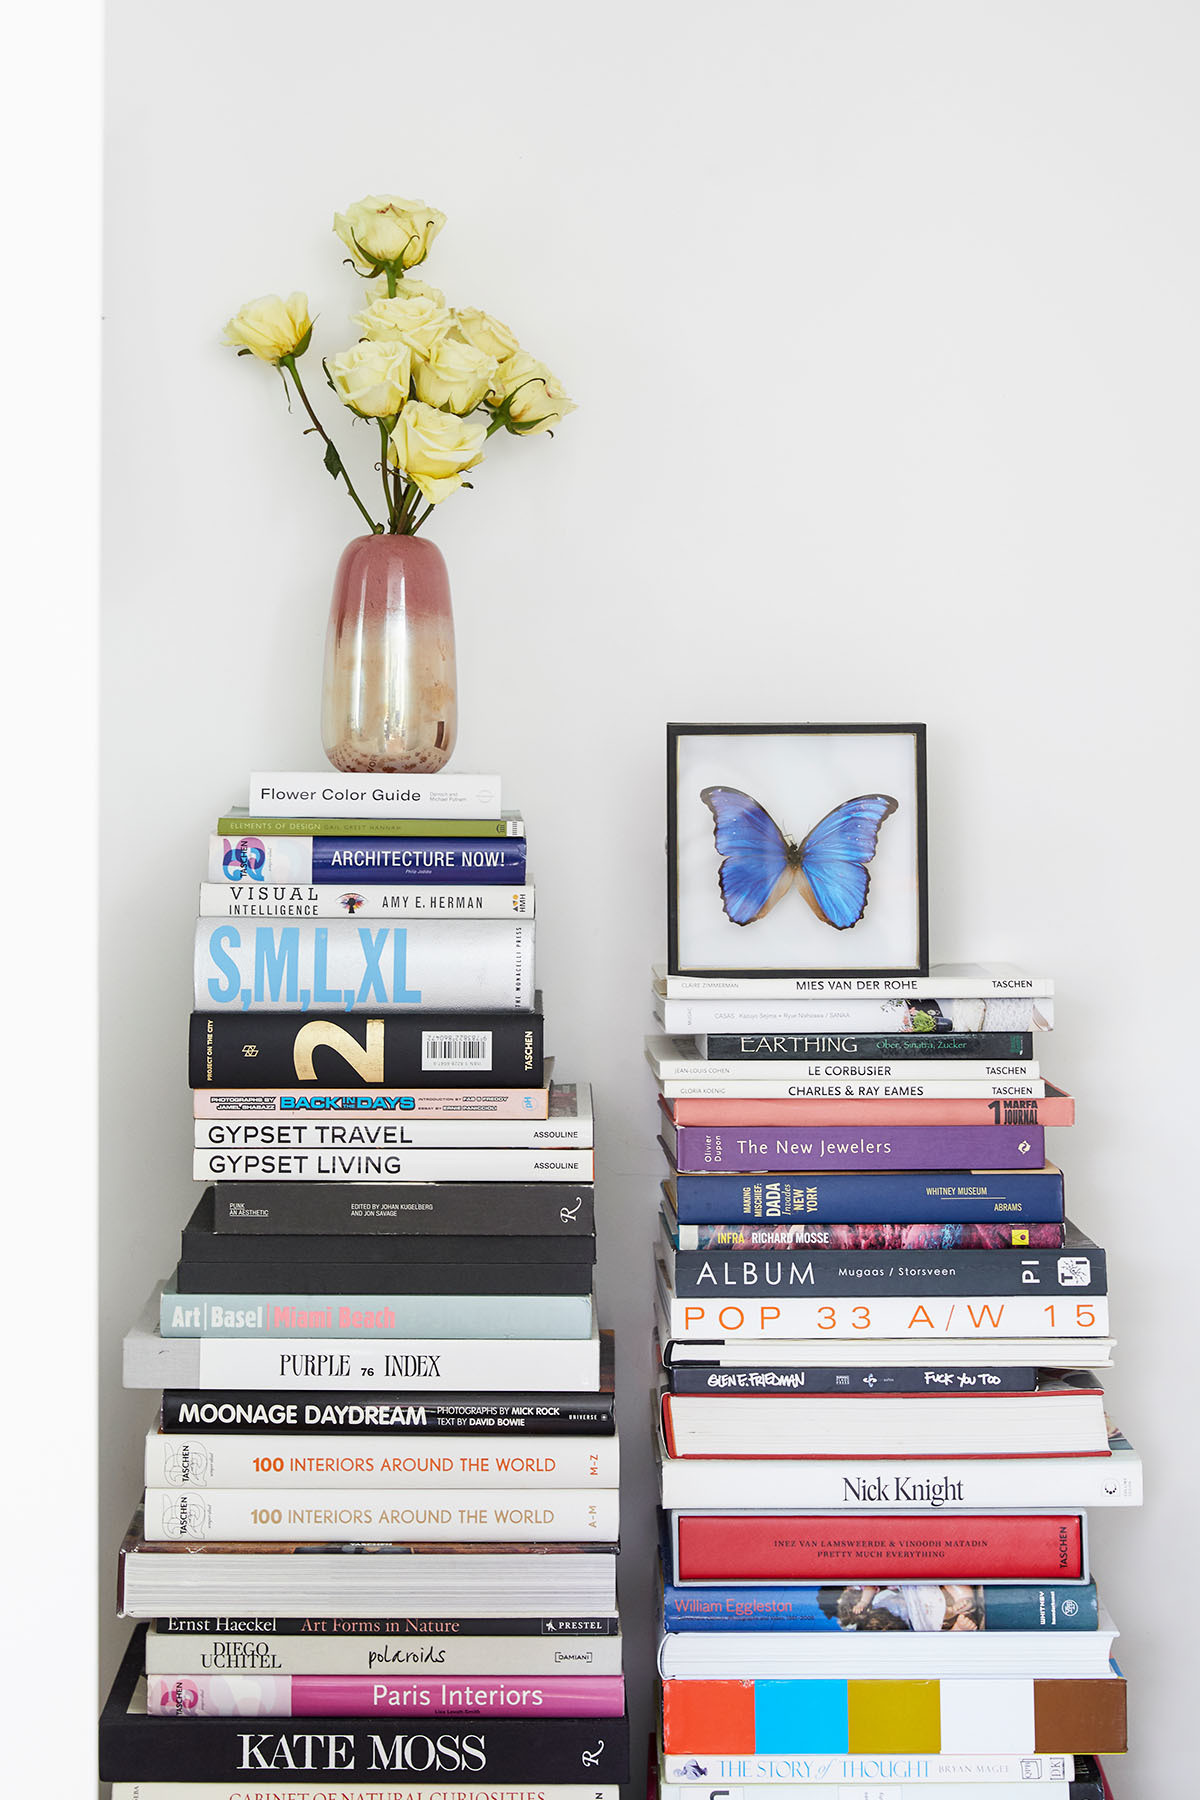 Stacks of books provide ample inspiration for the busy designer, who works primarily from home.